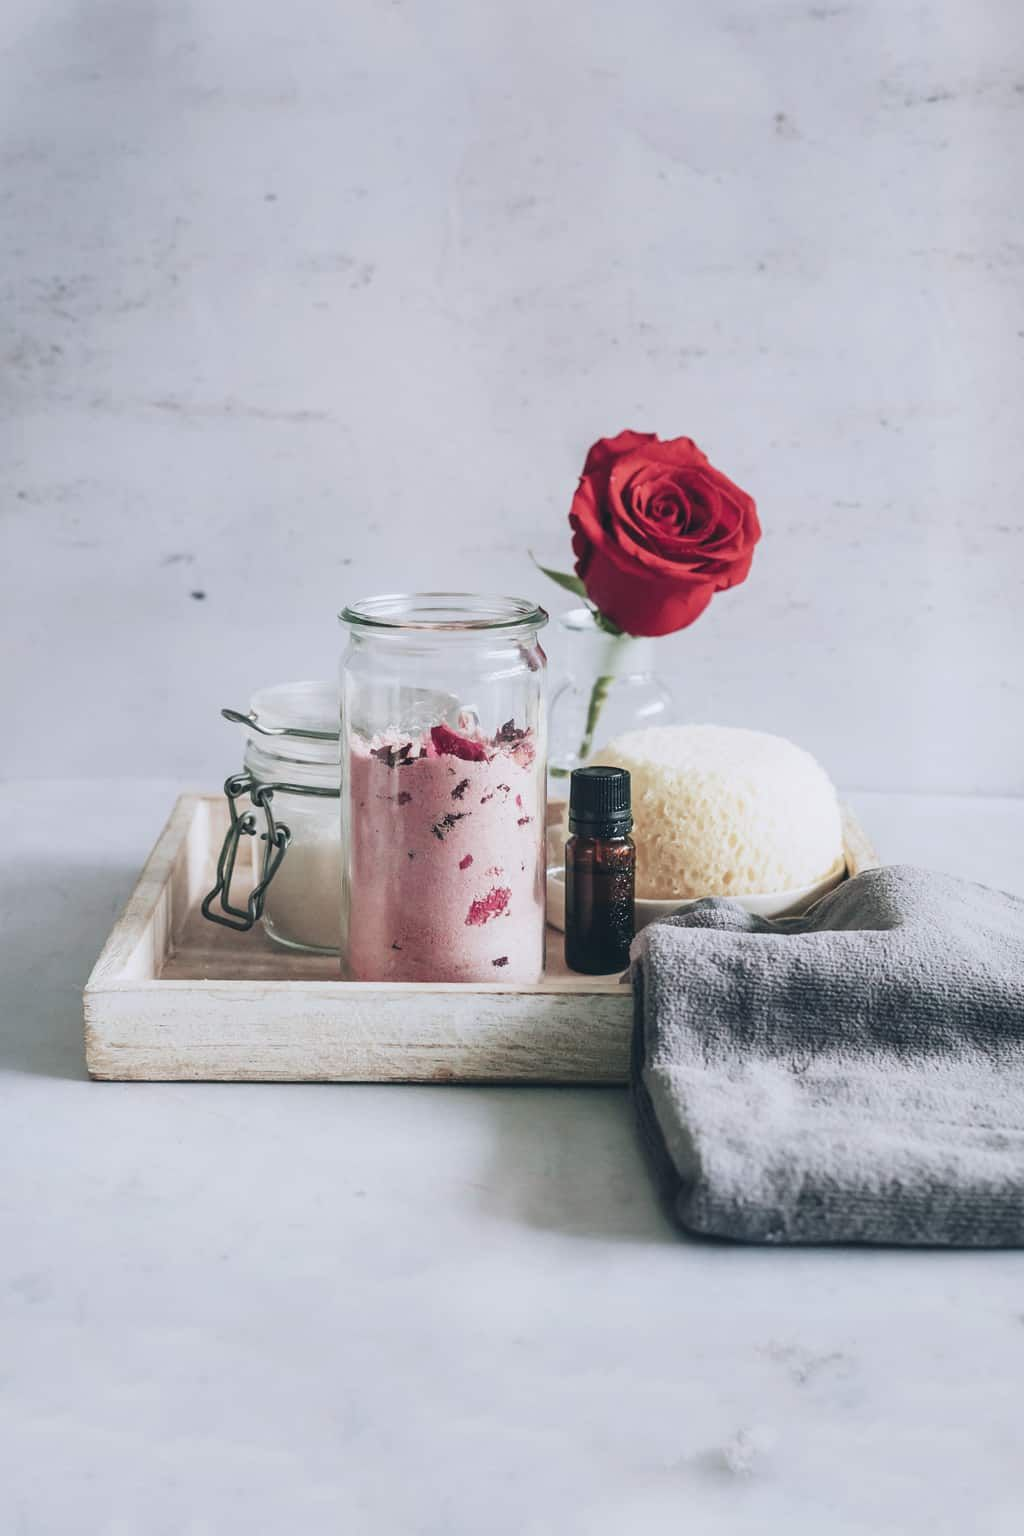 Homemade milk bath with roses recipe with images